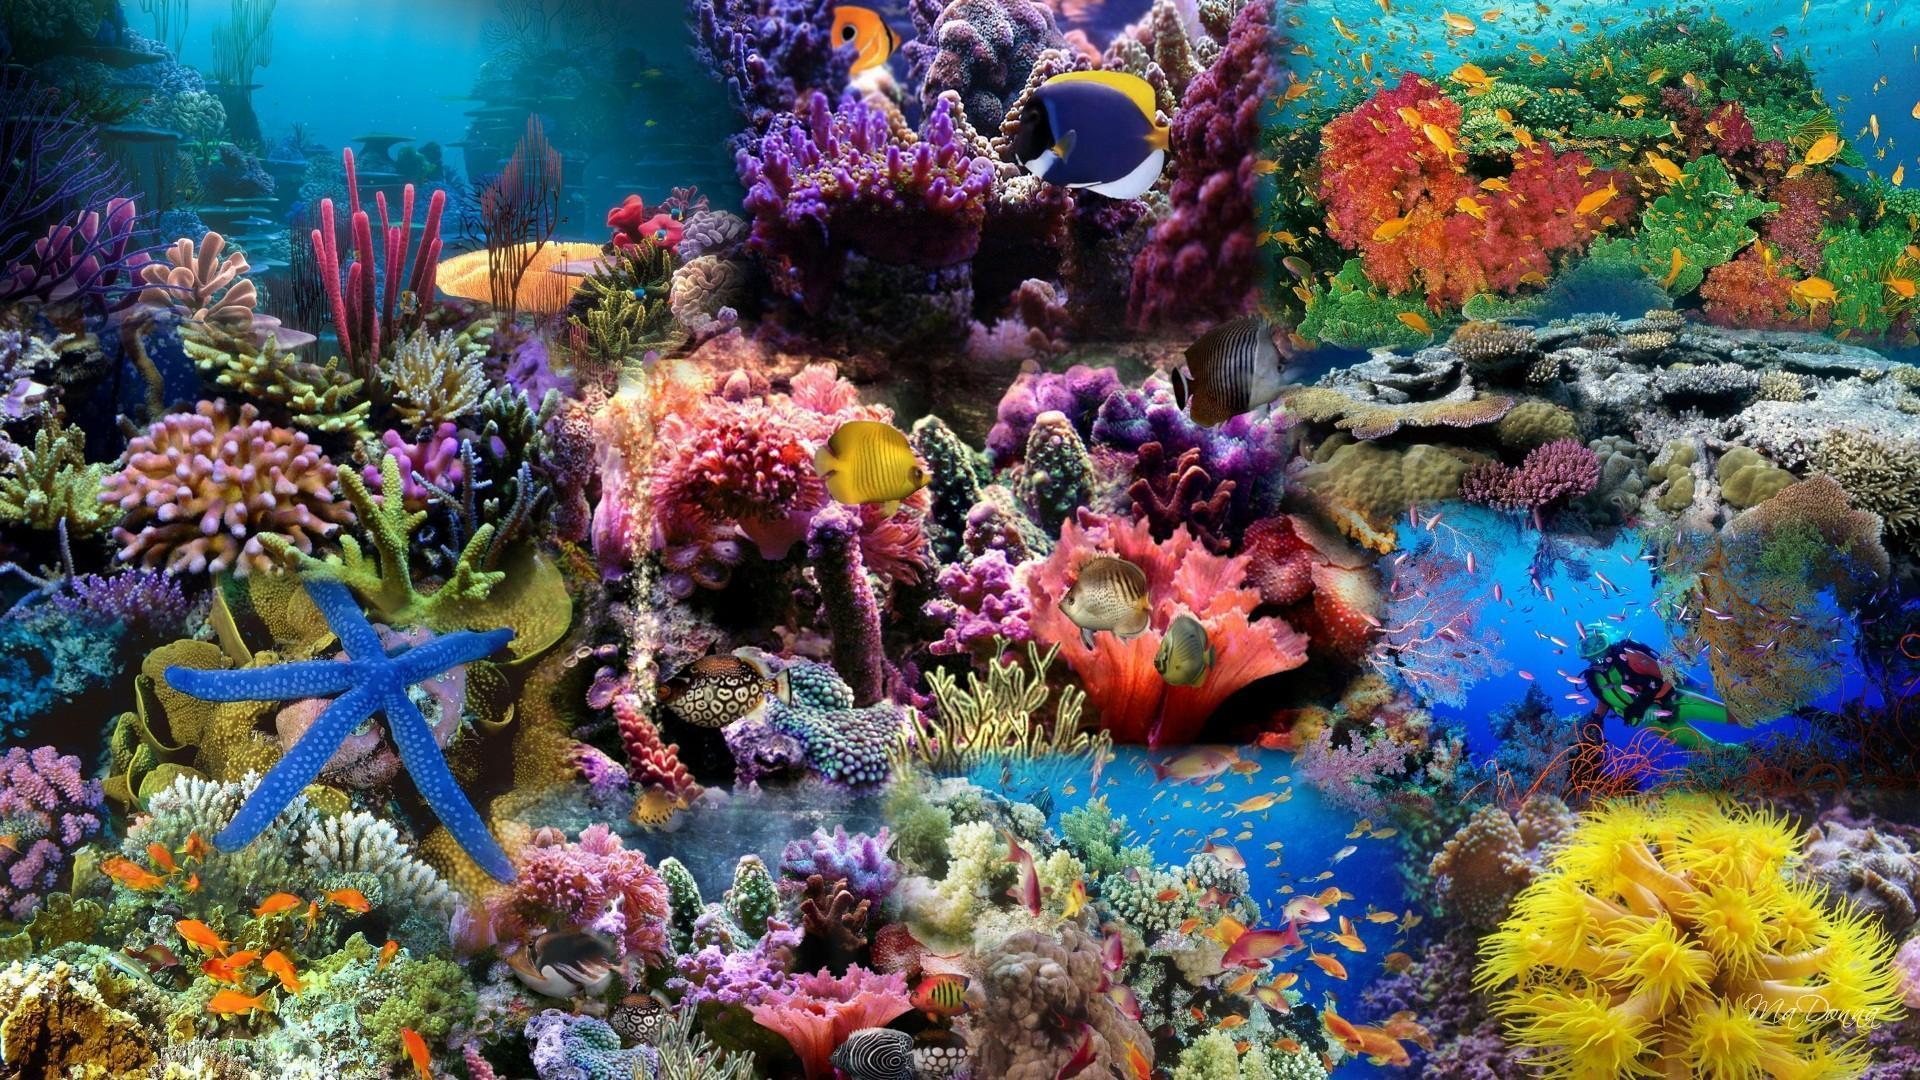 Coral Reef Wallpaper, wallpaper, Coral Reef Wallpaper hd wallpaper ...